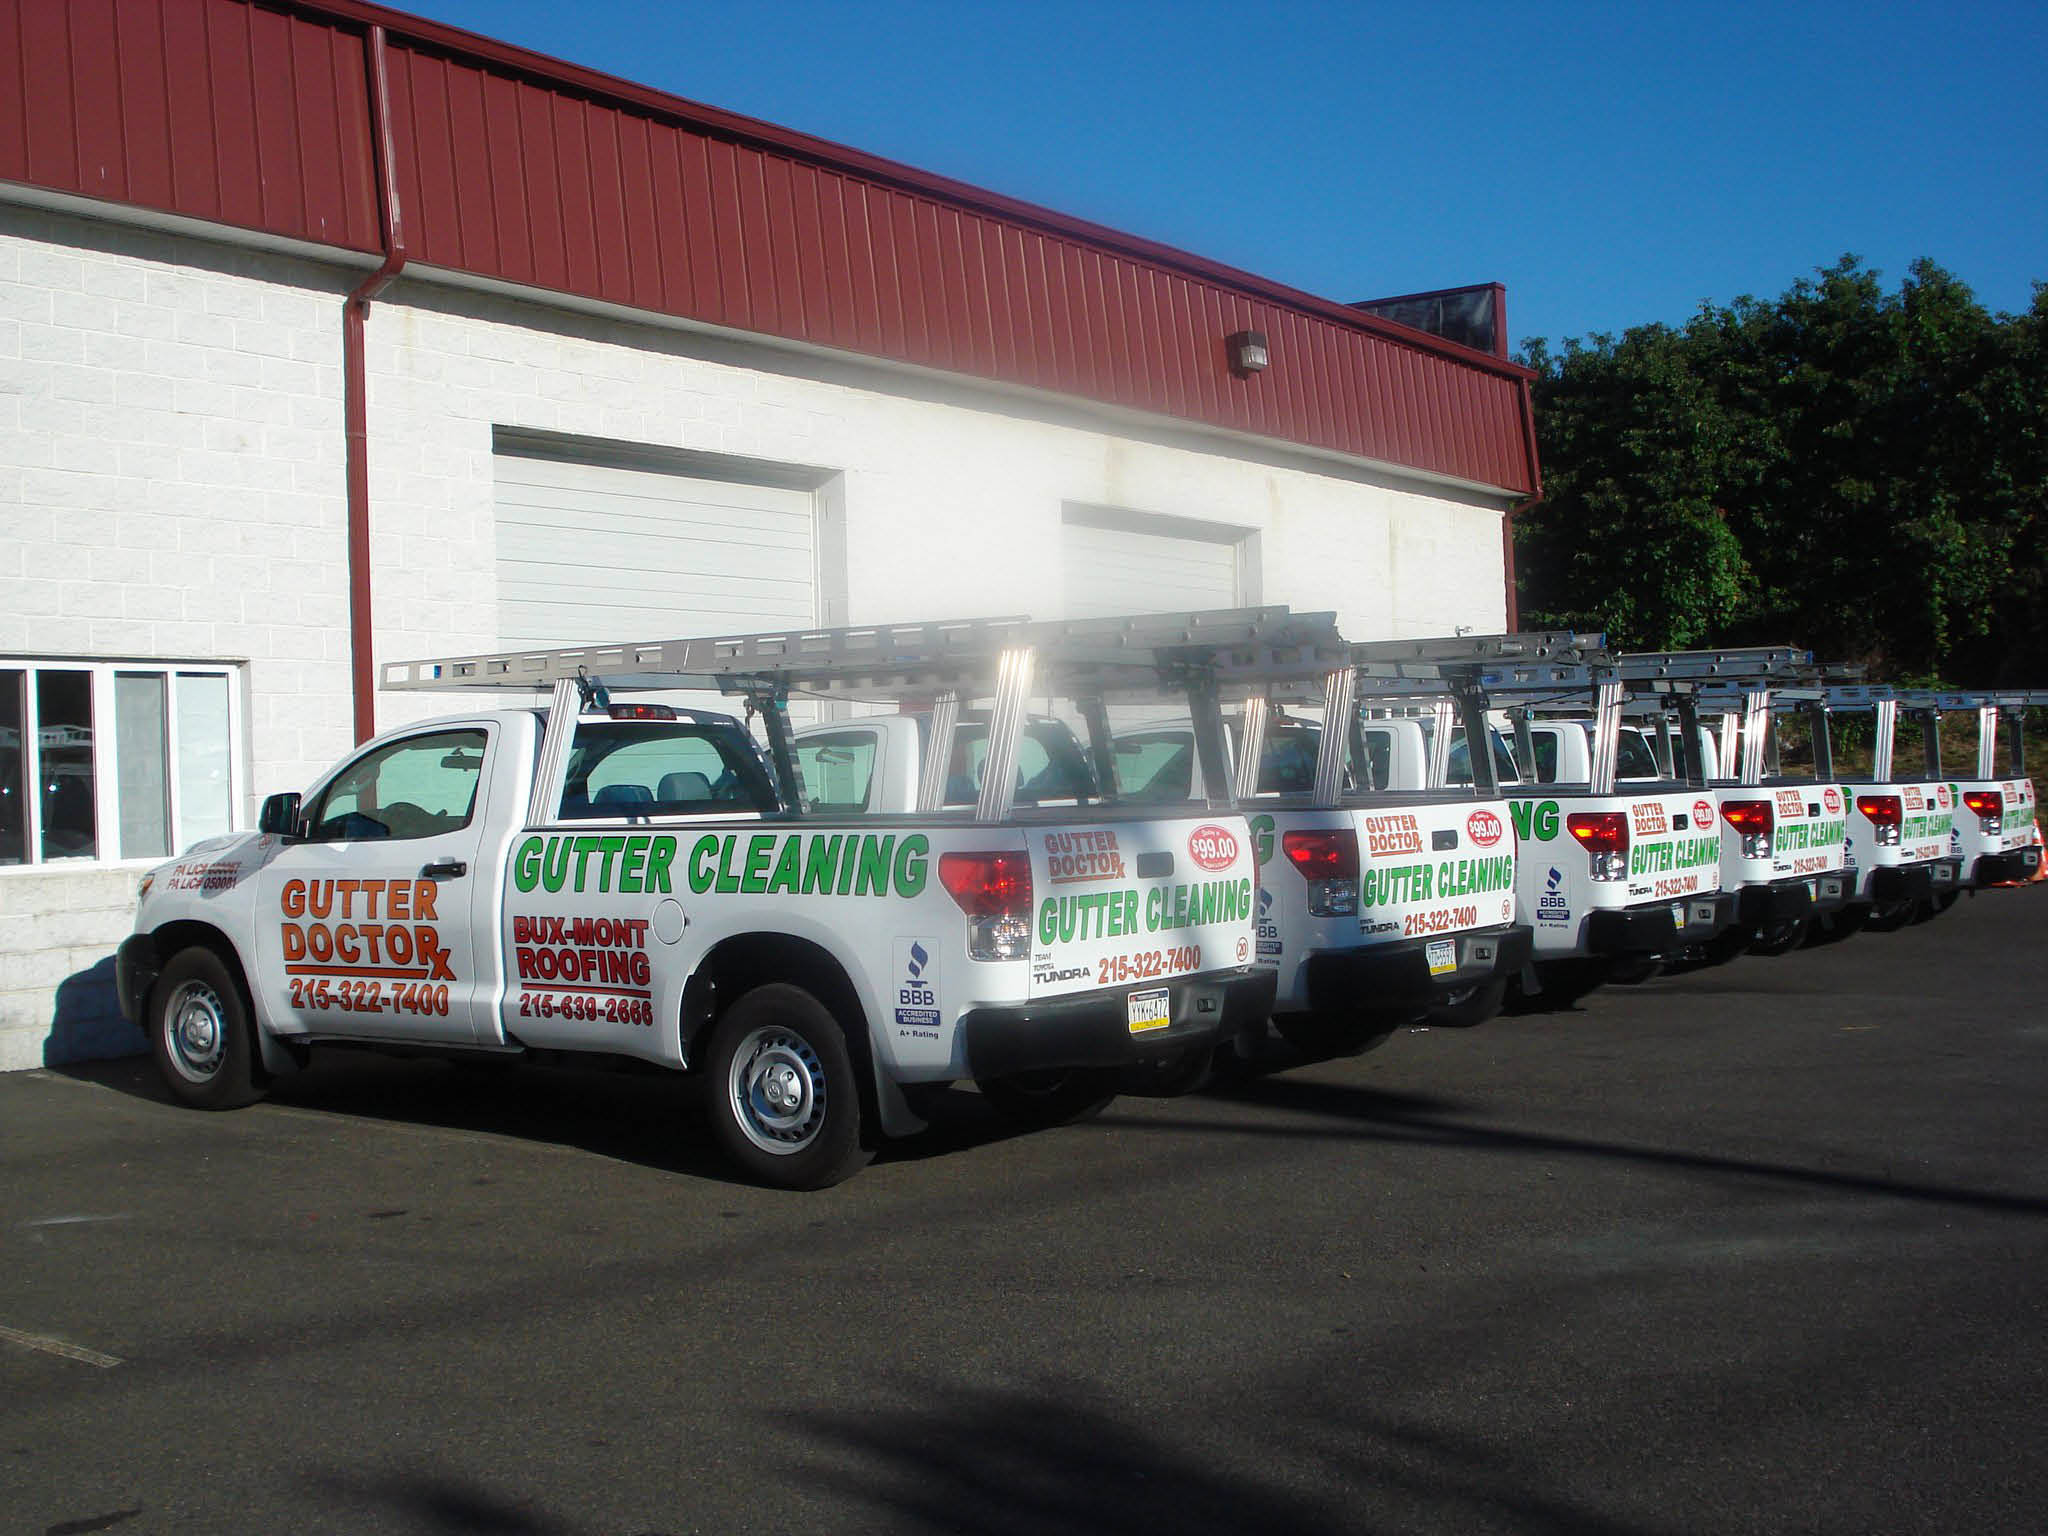 gutter doctor, gutter doctor valpak, gutter doctor coupon, gutter coupon, gutters, valpak, gutter installation, home remodel, home improvement, home,